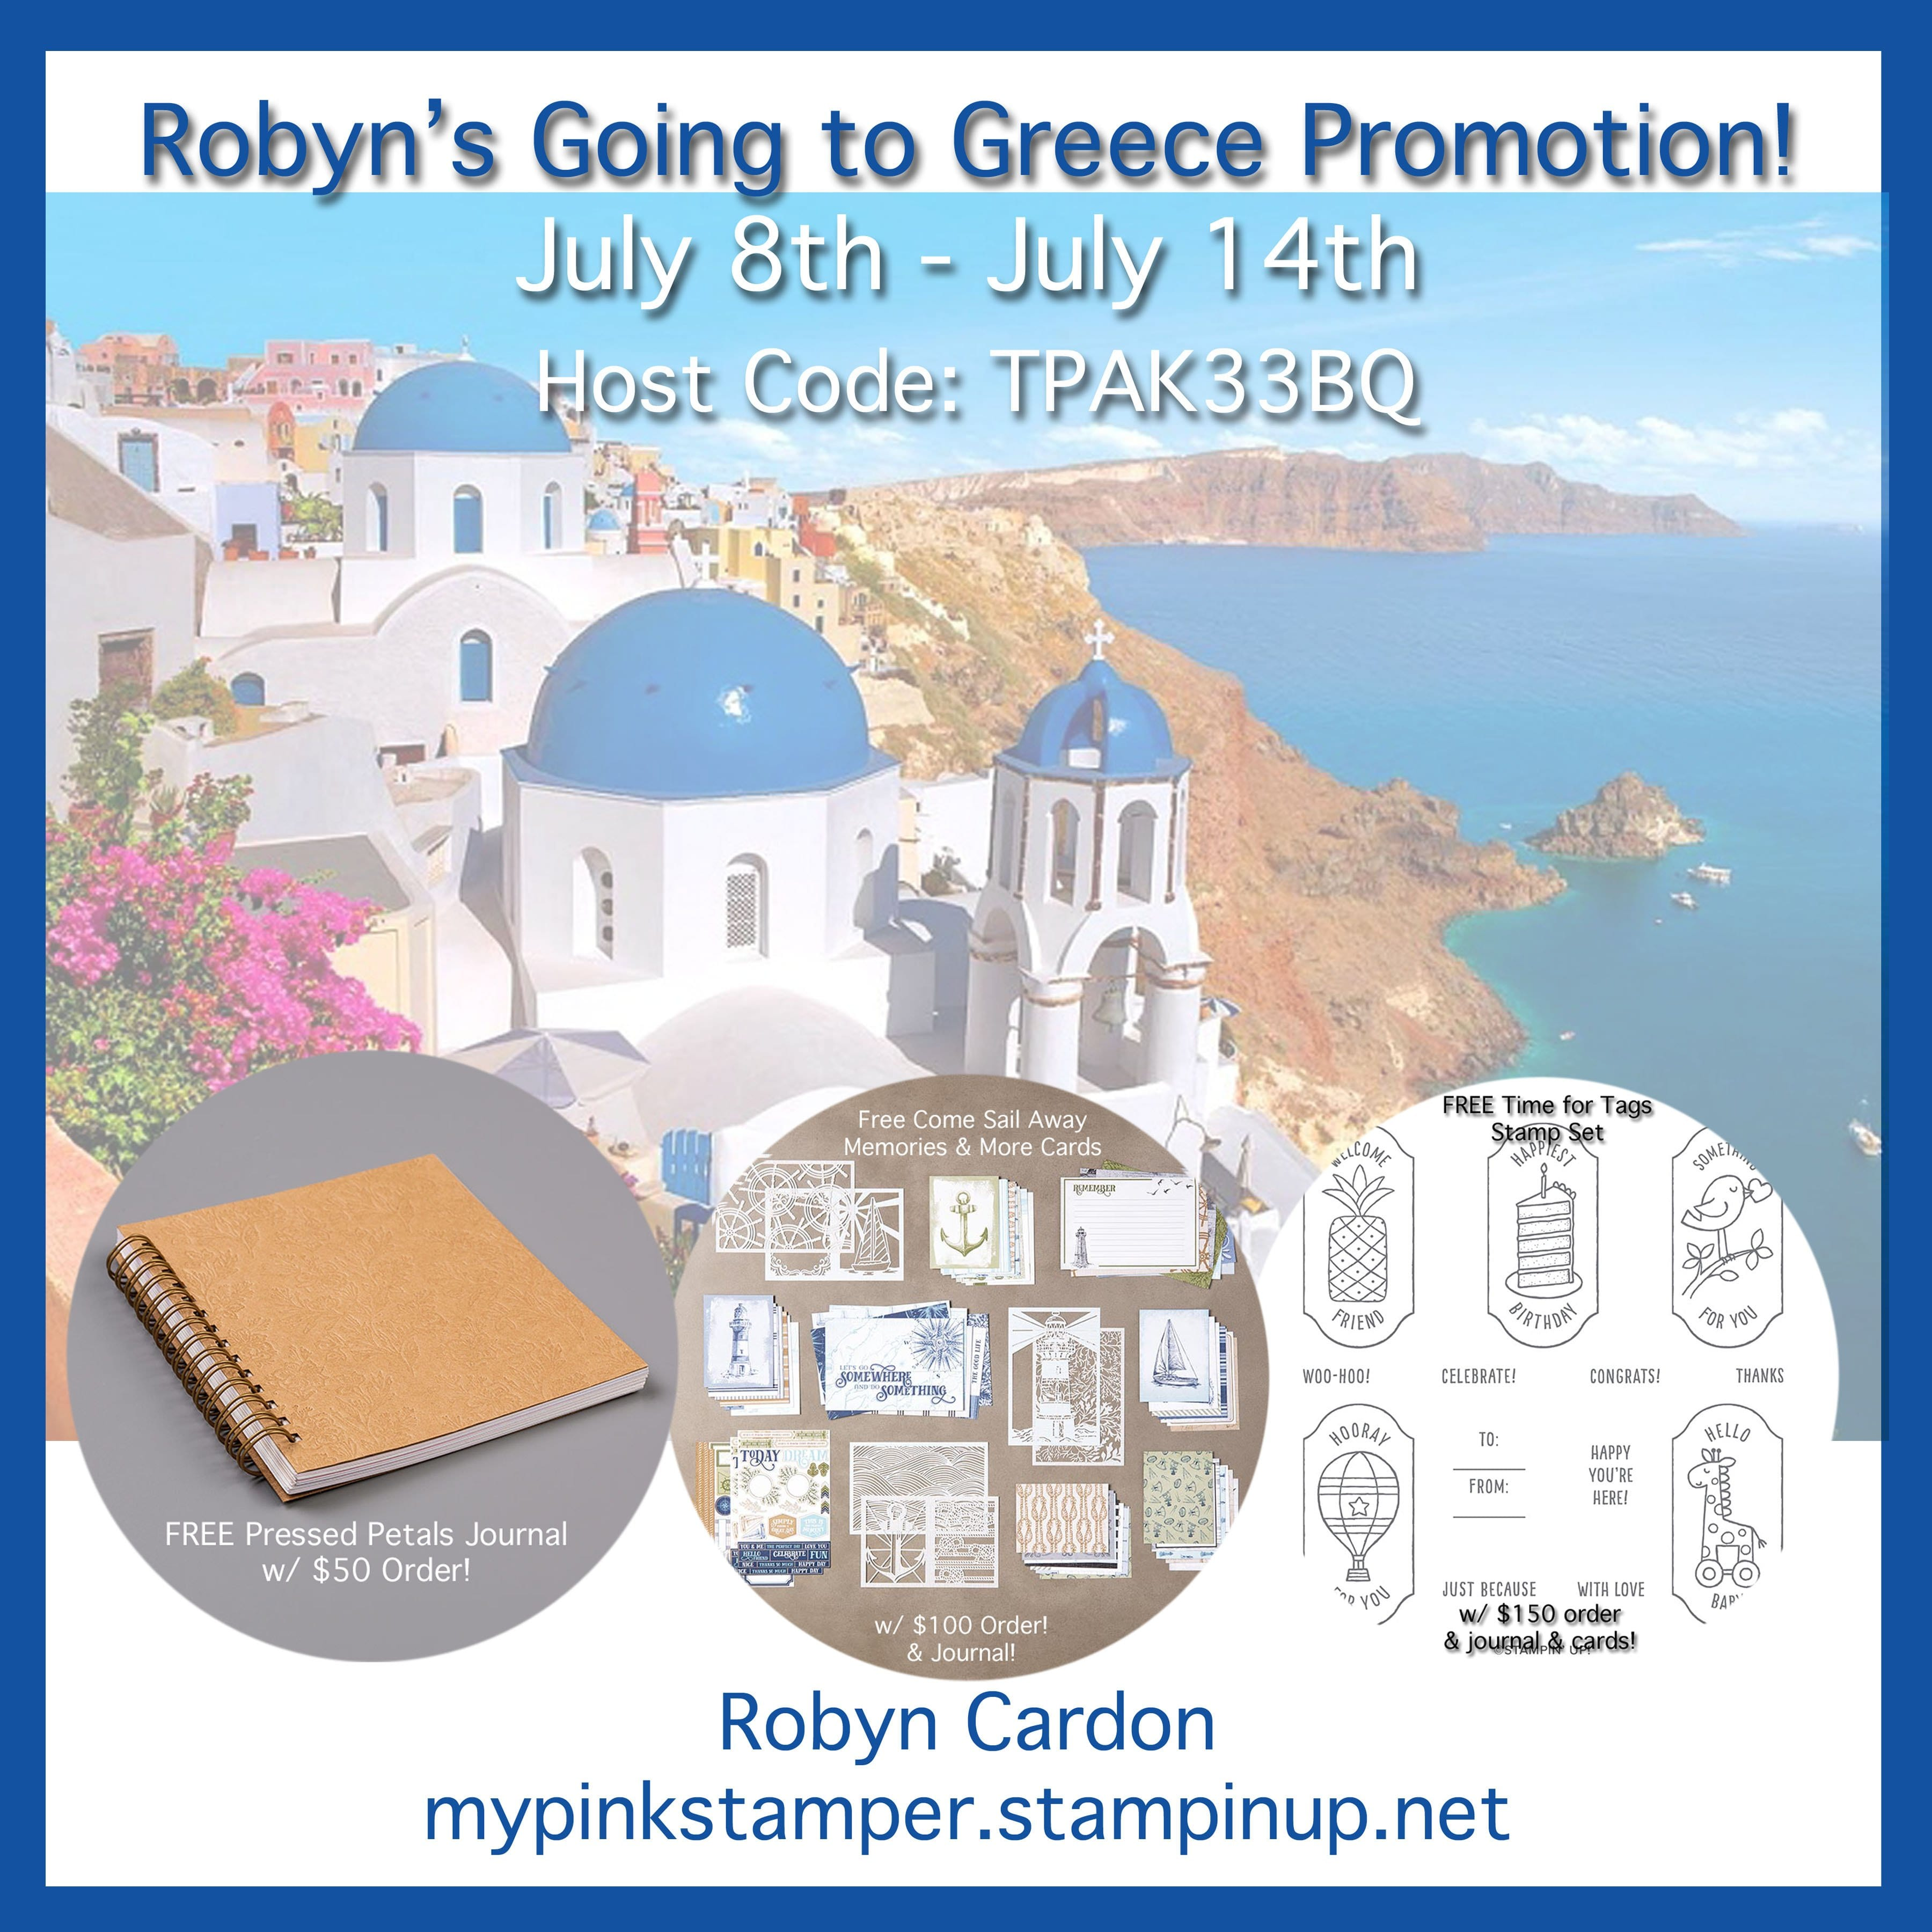 Day 1 – Going to Greece Promotion & Giveaway!